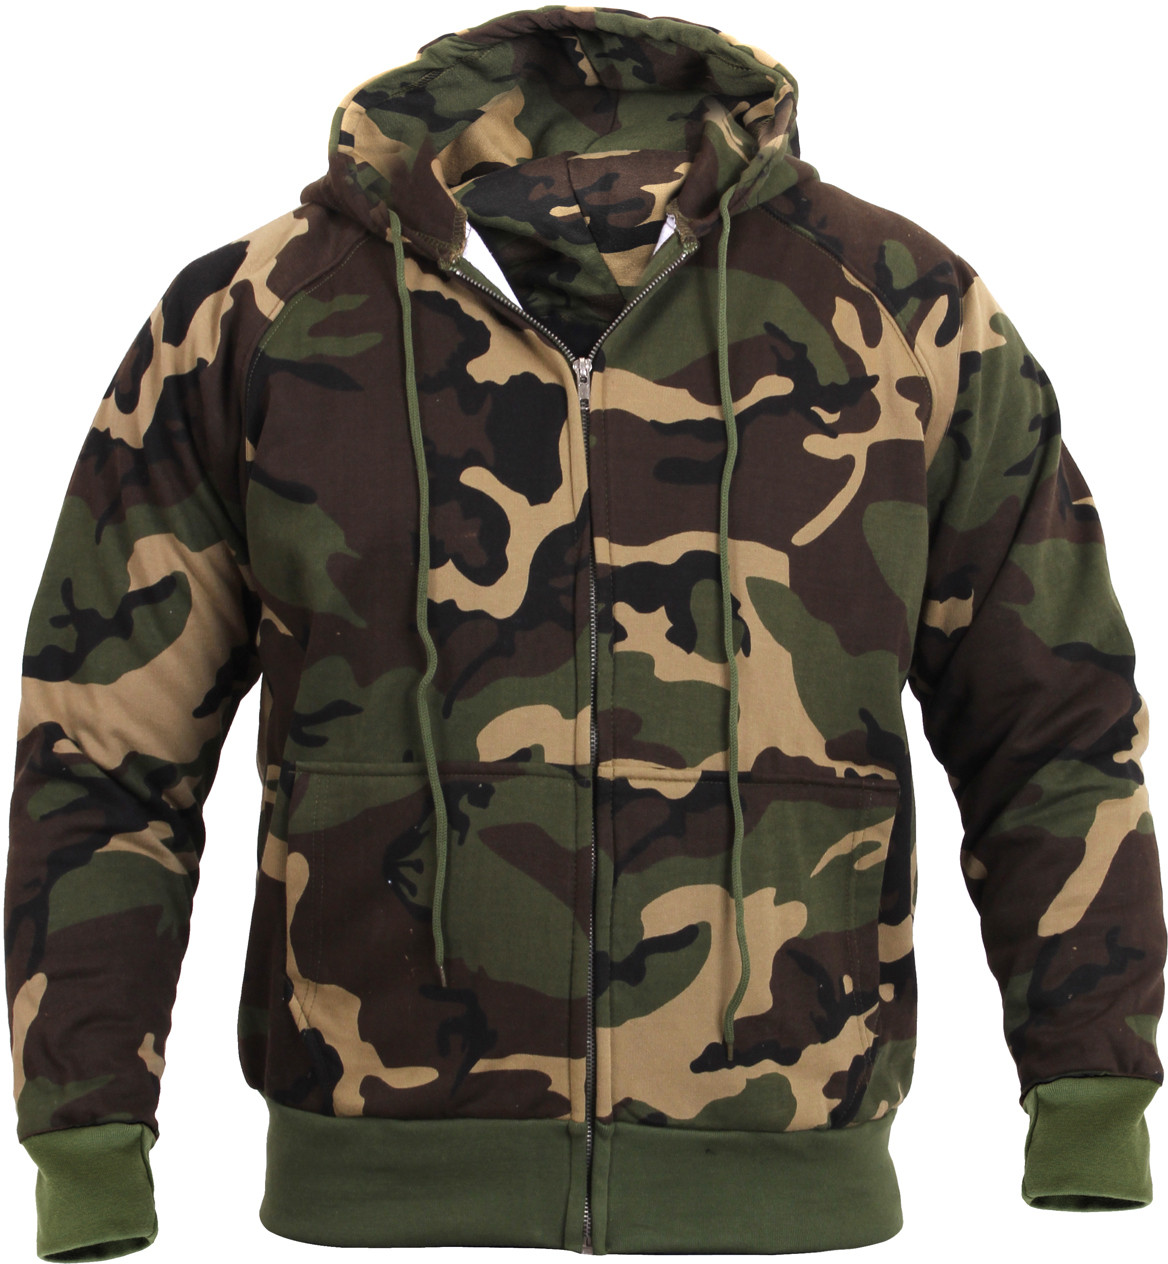 More Views. Woodland Camouflage Thermal Lined Zip Up Hoodie Sweatshirt ... 23d8d4b5fc9